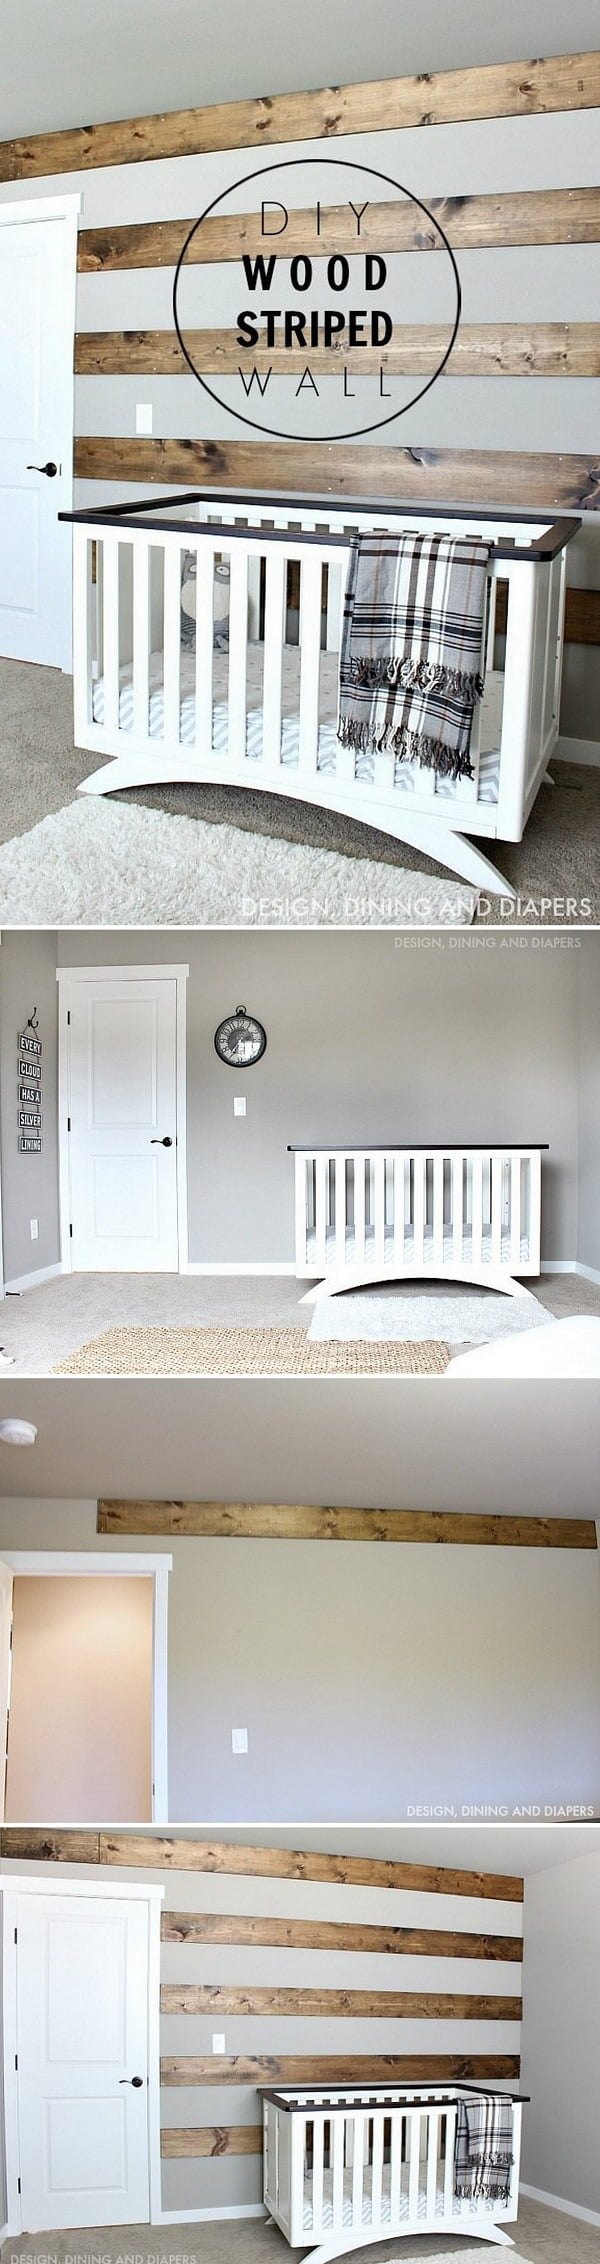 Check out how to make a DIY wood striped wall for farmhouse decor